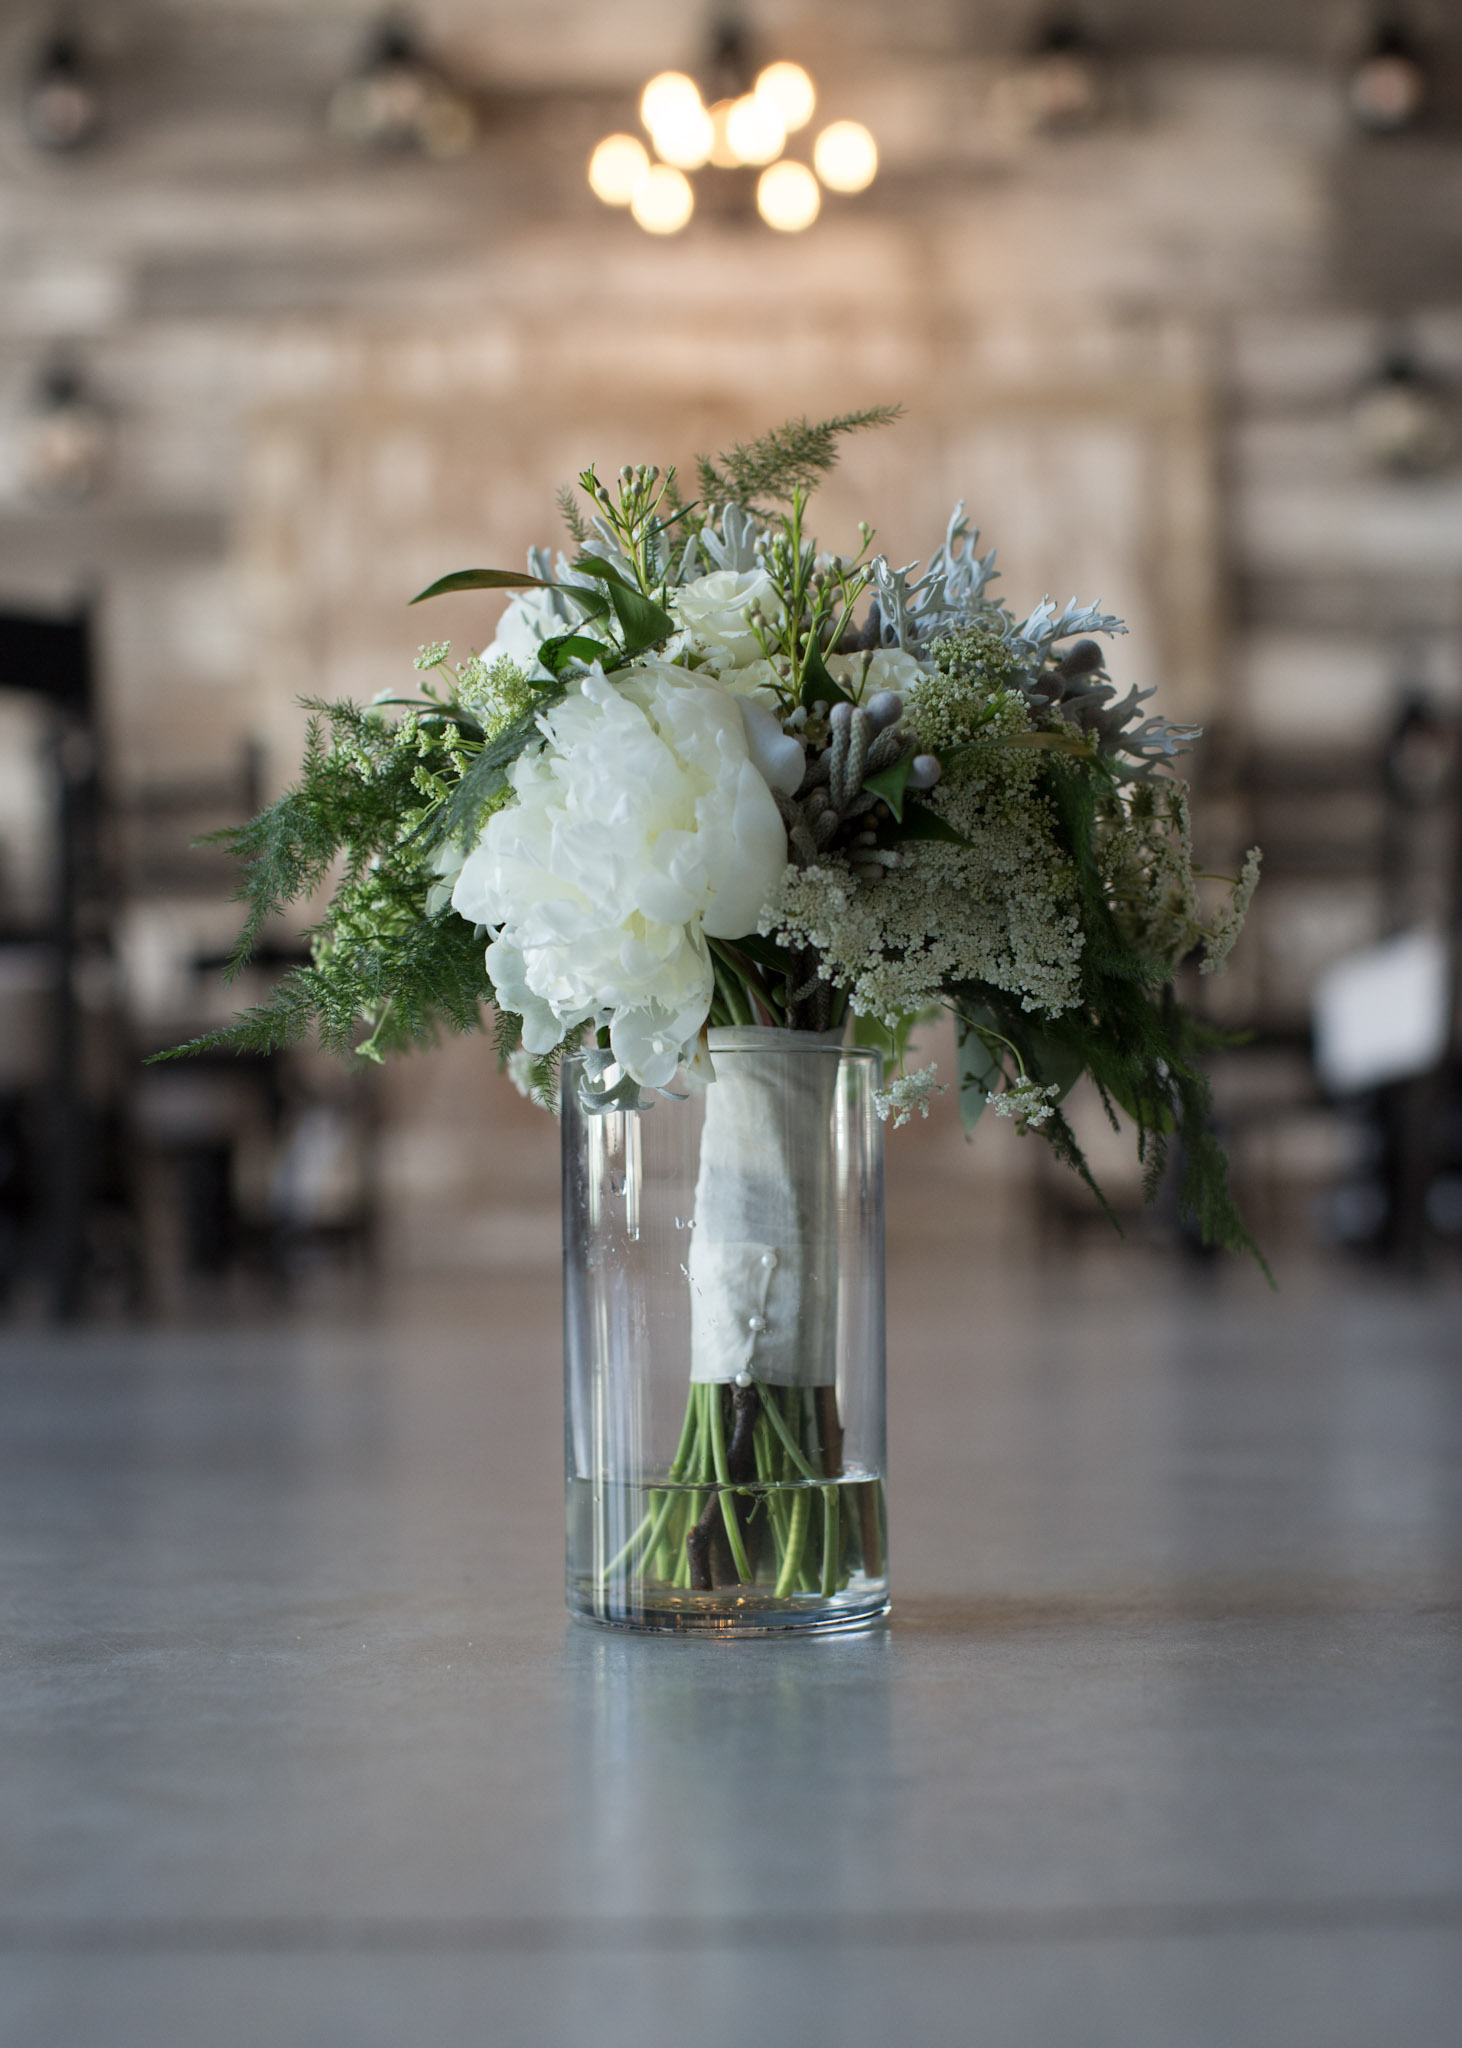 Kansas_City_Small_Wedding_Venue_Elope_Intimate_Ceremony_Budget_Affordable_Summer_Flowers_KM4A7994E&U.JPG